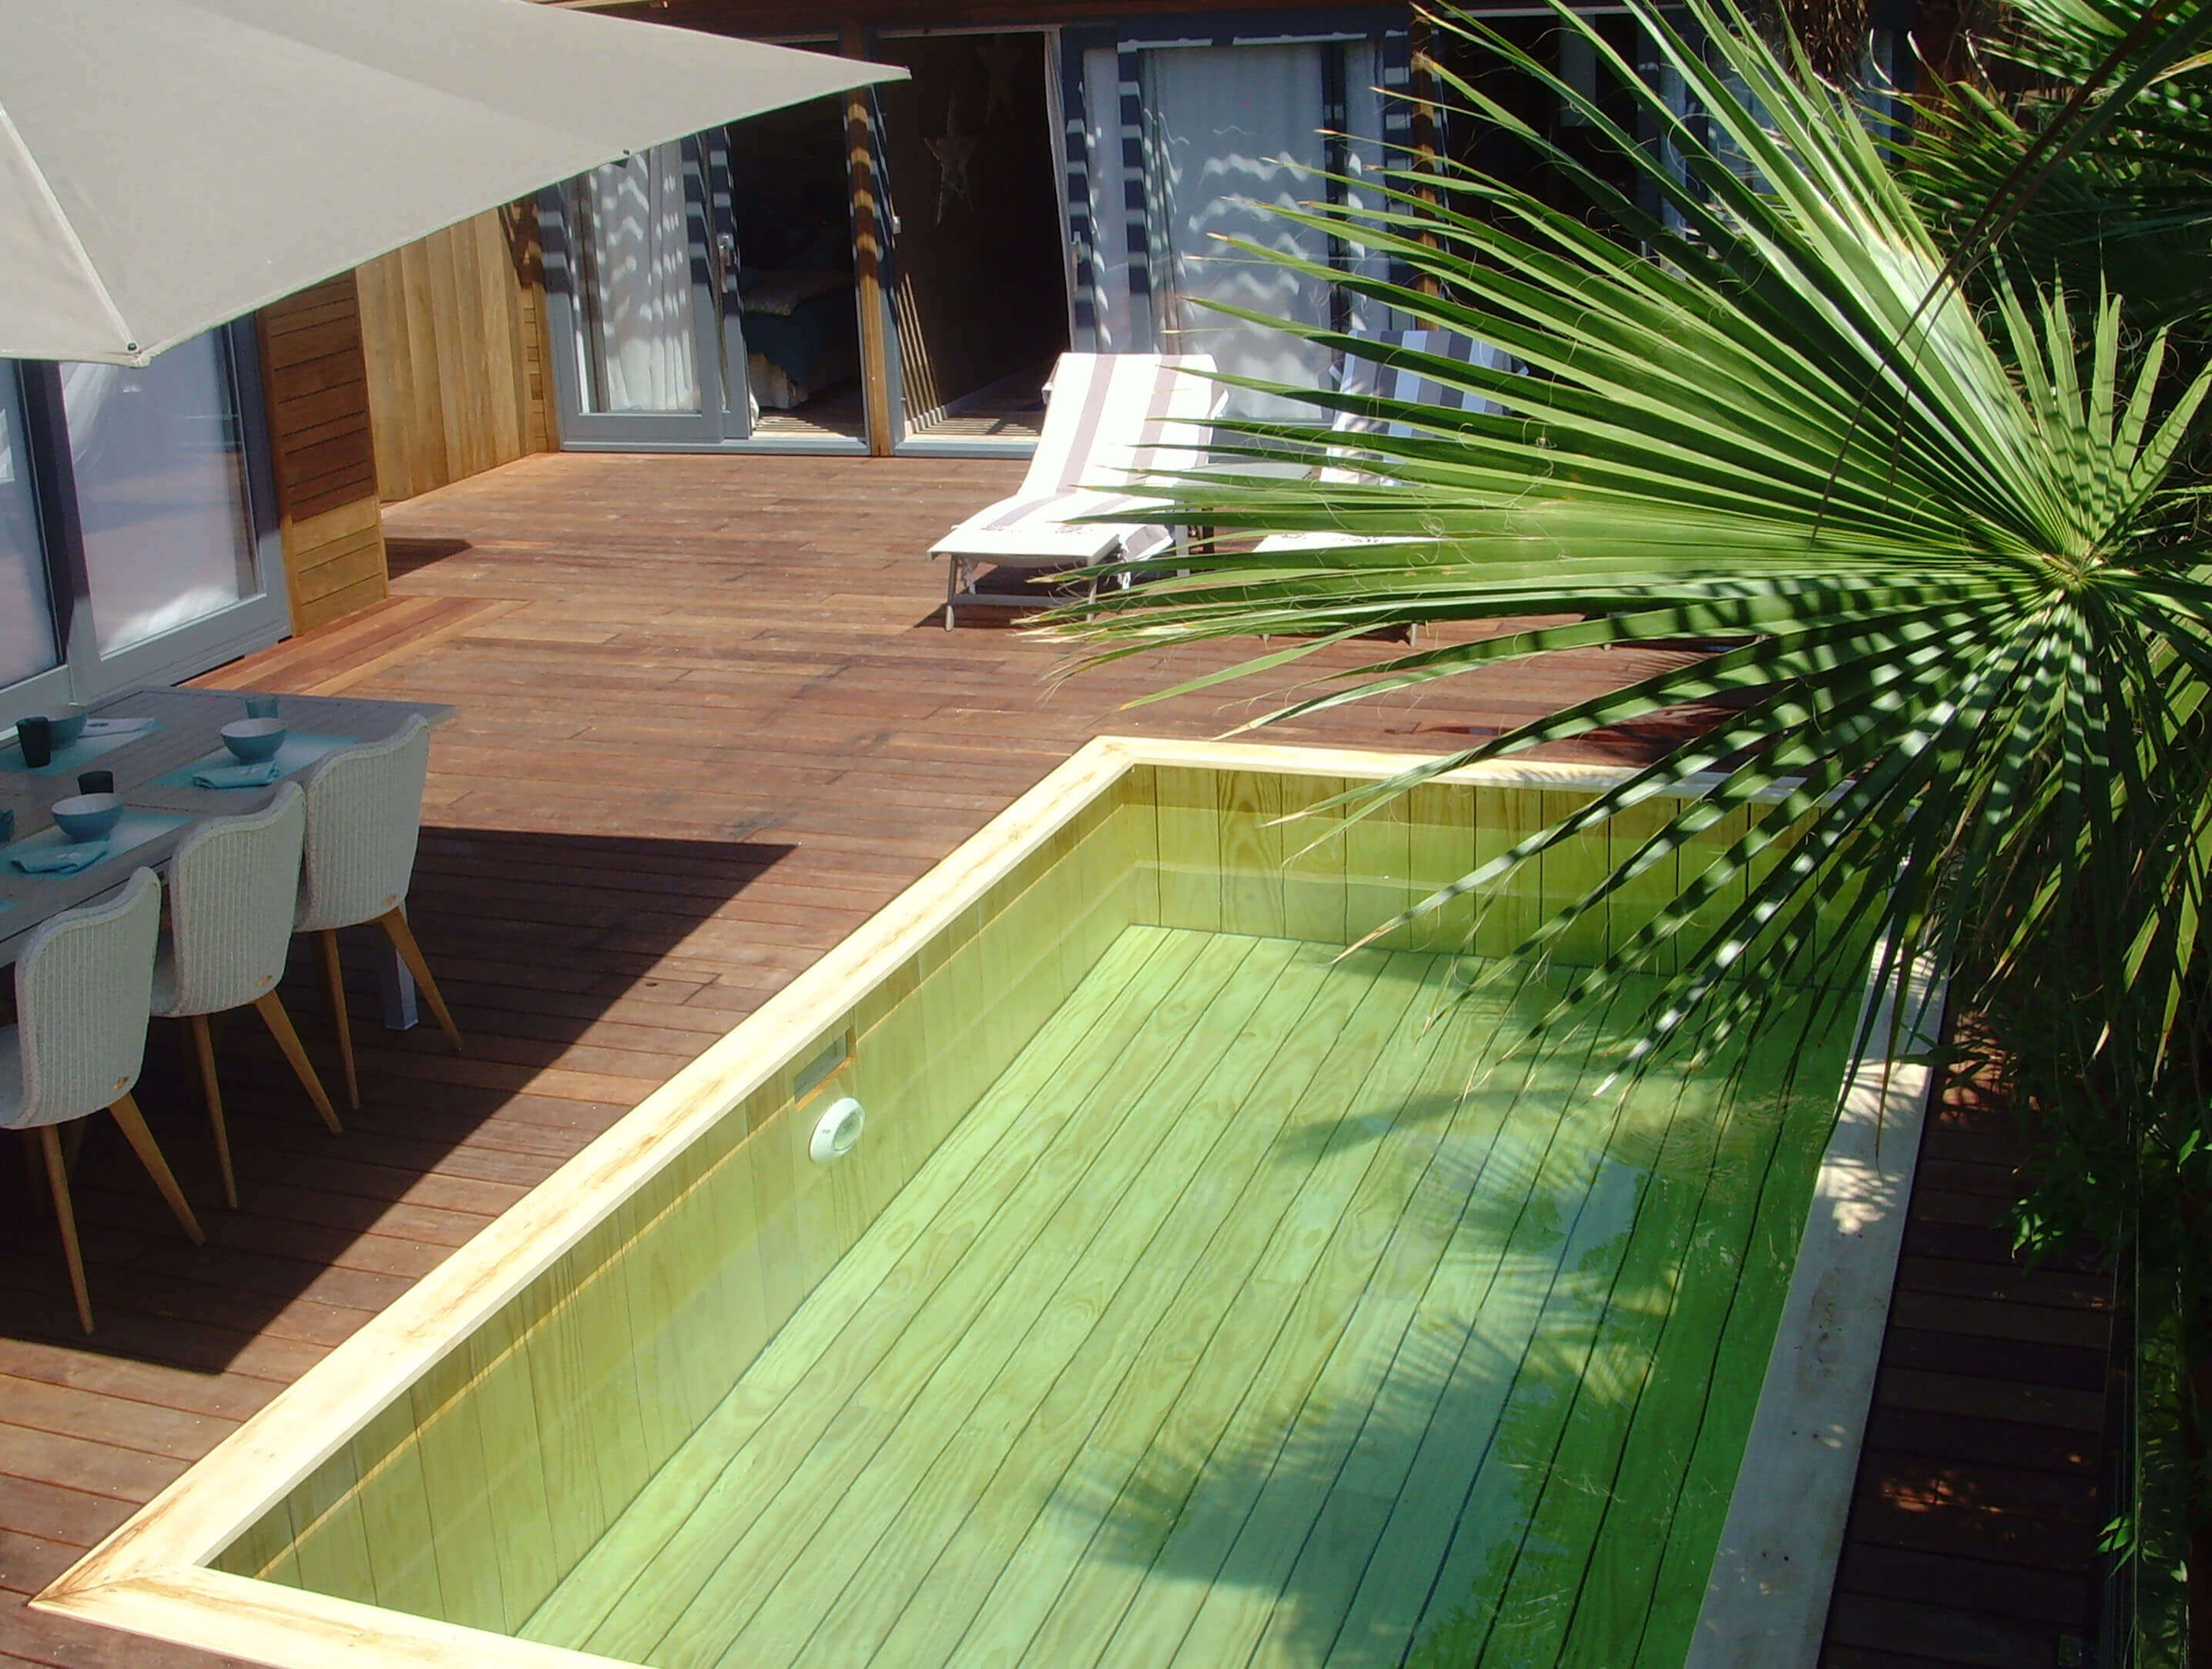 Piscine terrain en pente fashion designs for Piscines enterrees